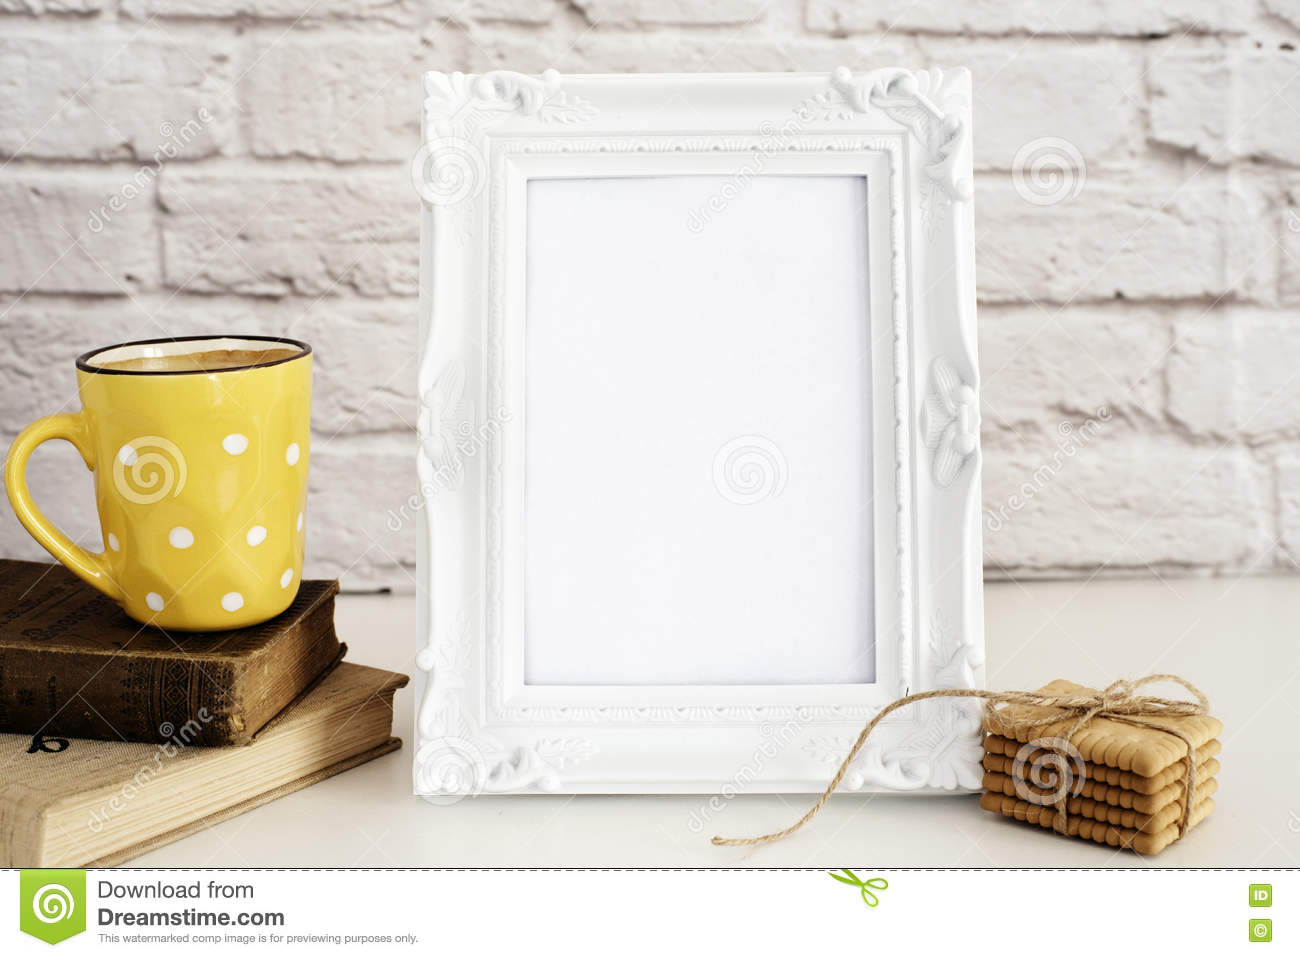 Frame Mockup. White Frame Mock Up. Yellow Cup Of Coffee With White Dots, Cappuccino, Latte, Old Books, Cookies. Display Mock-Up